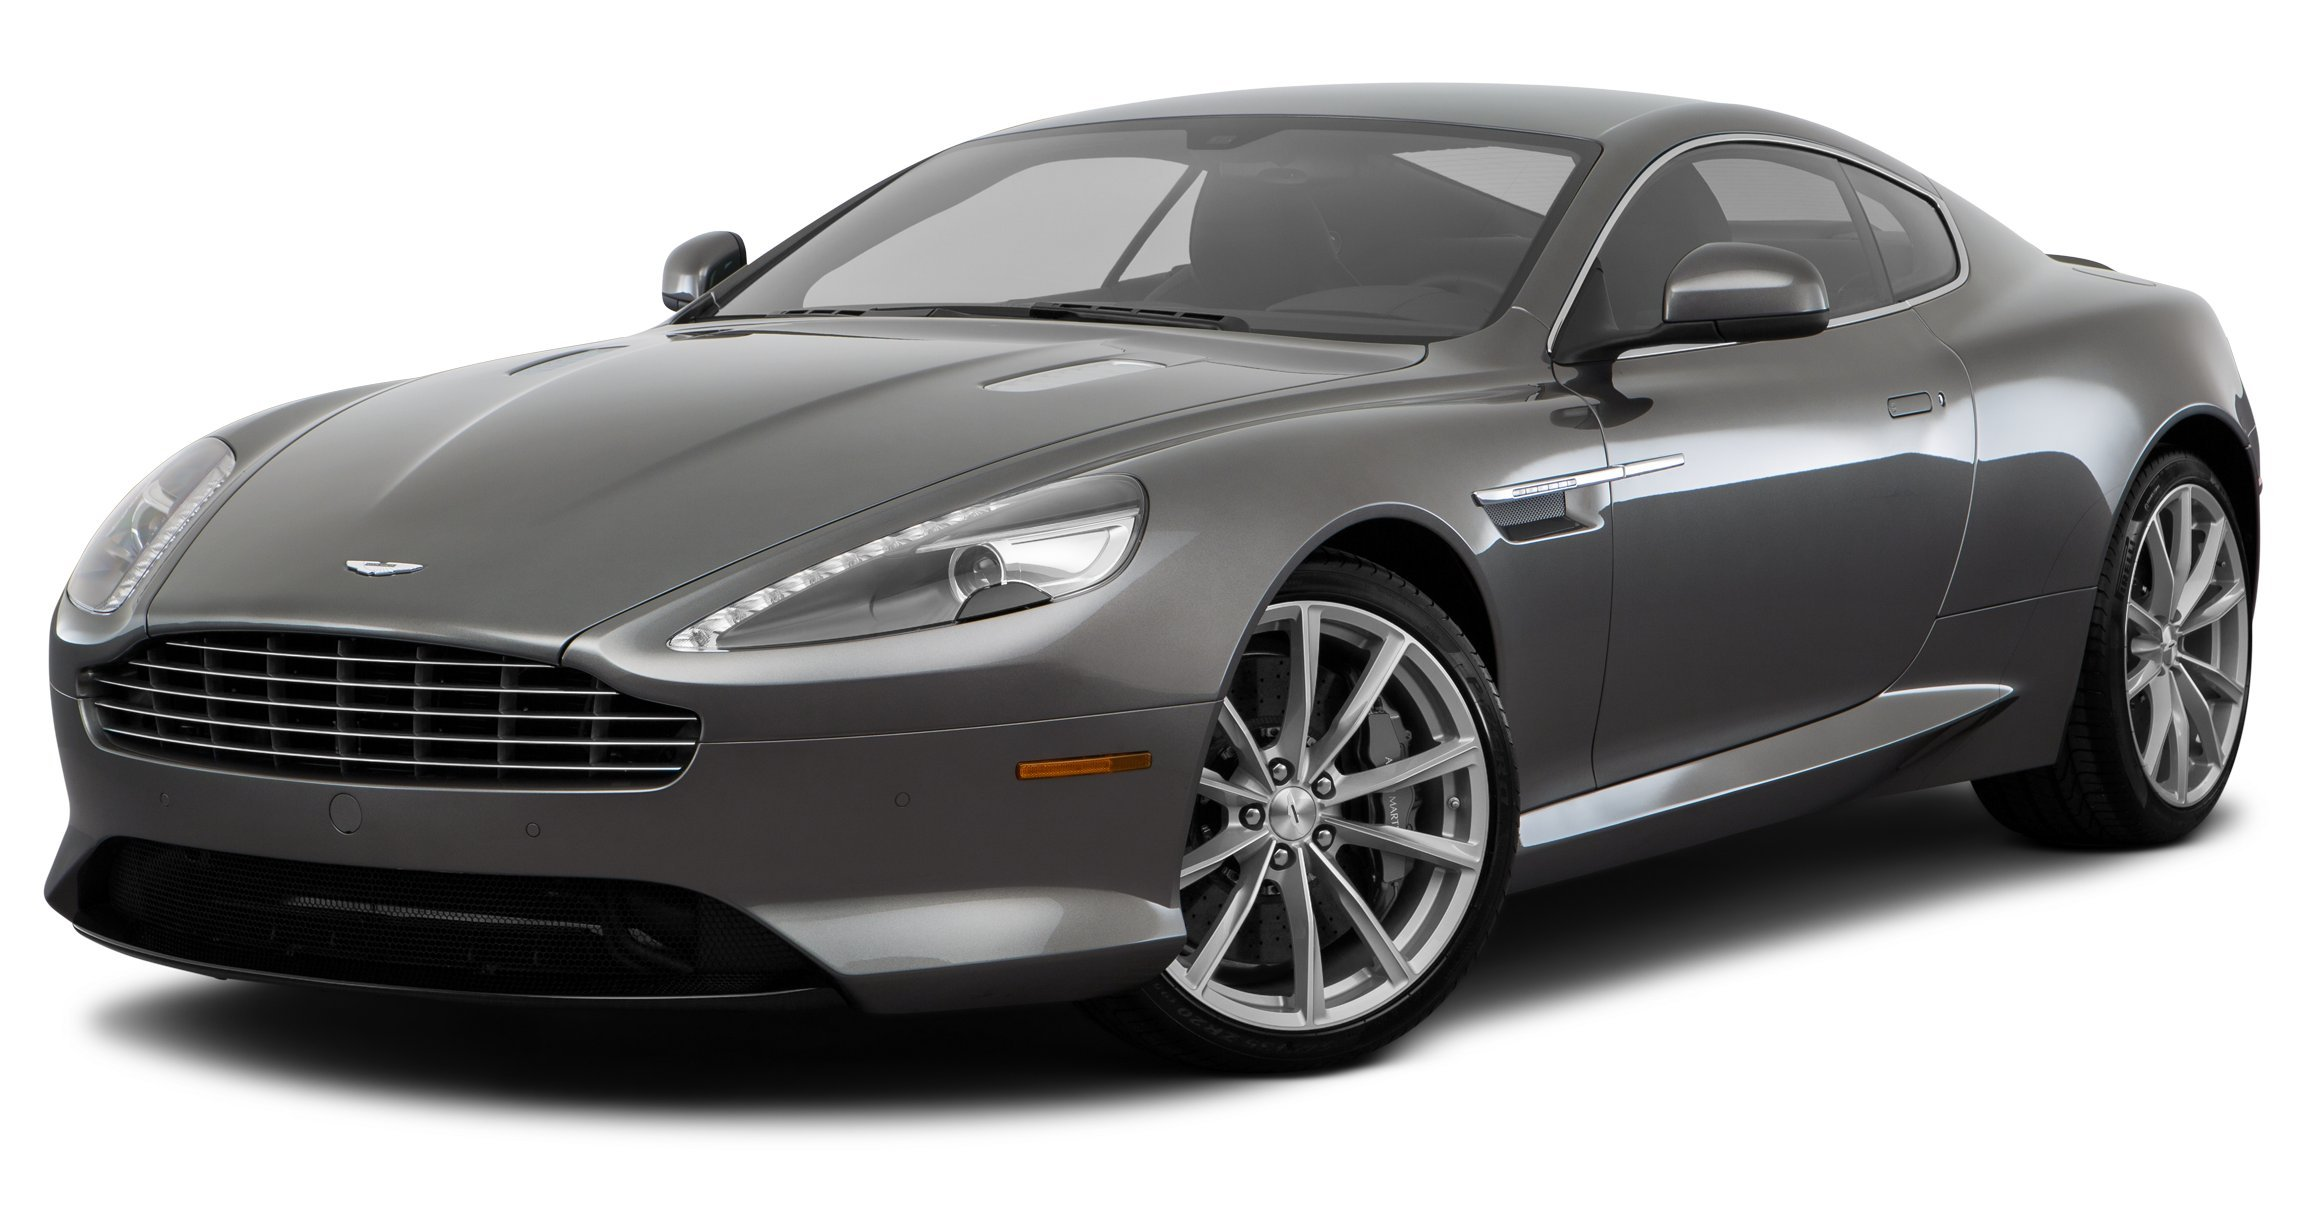 Amazon 2016 Aston Martin DB9 Reviews and Specs Vehicles